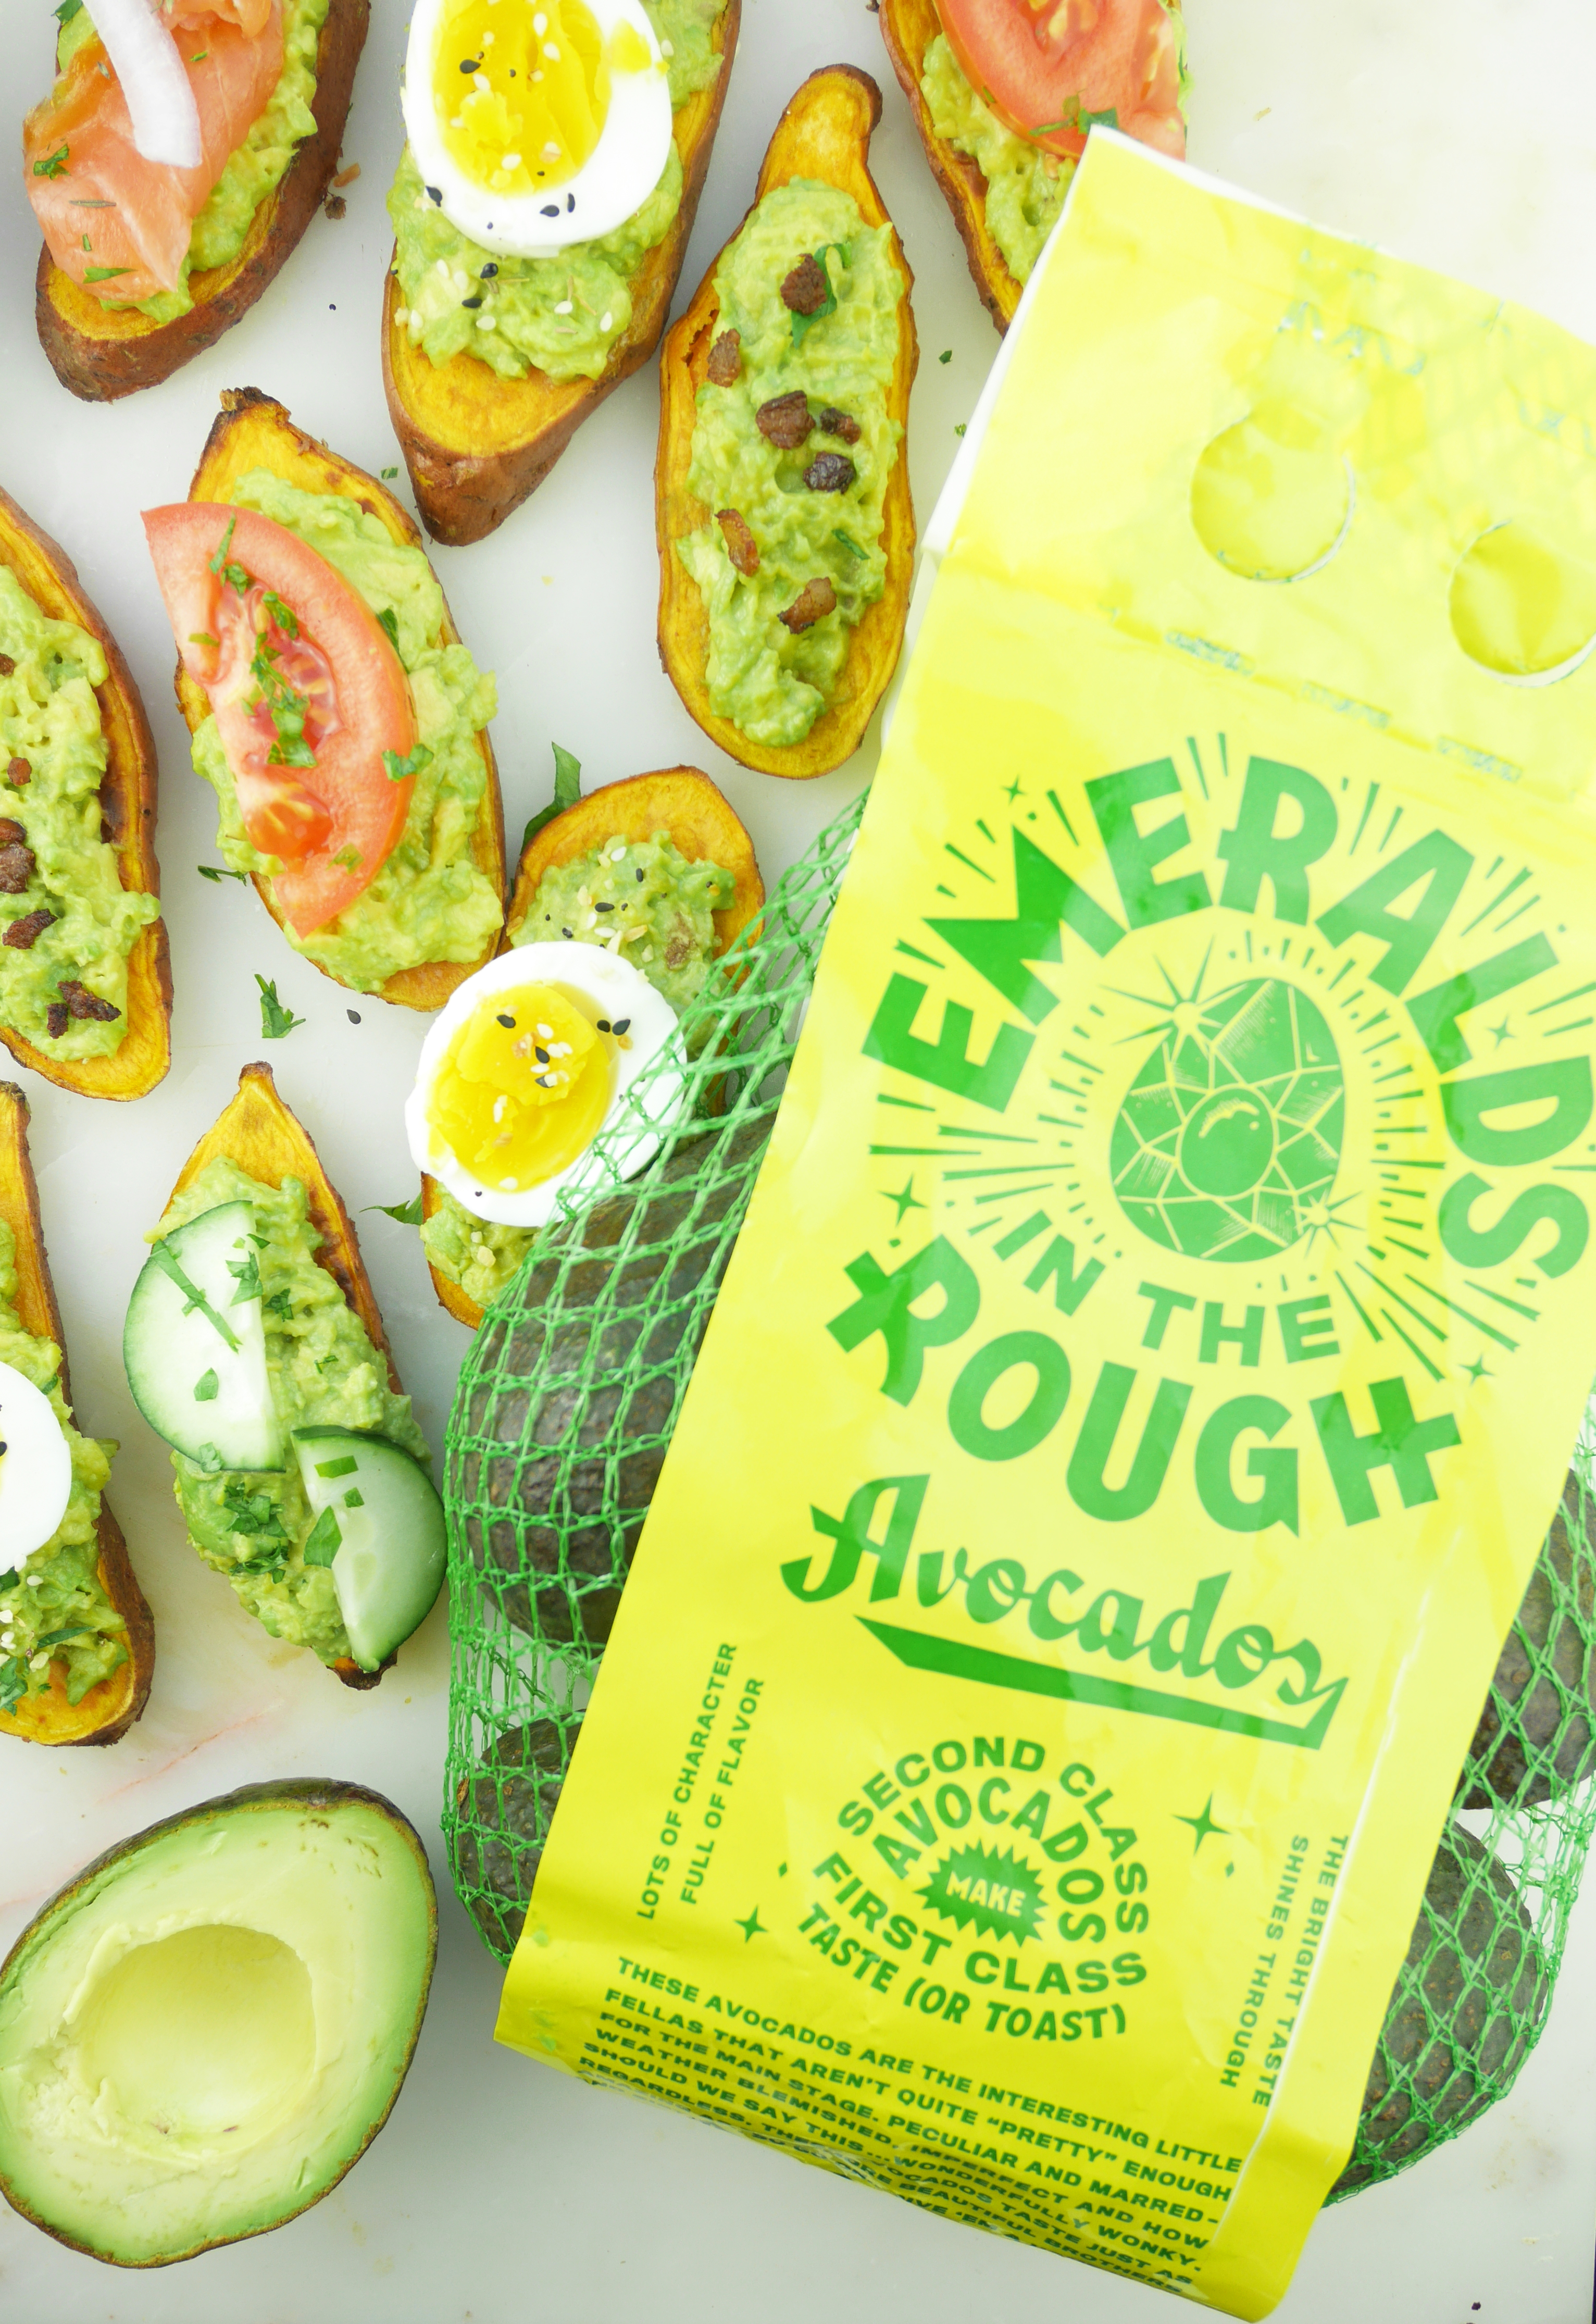 Mission Produce Emeralds in the Rough avocados